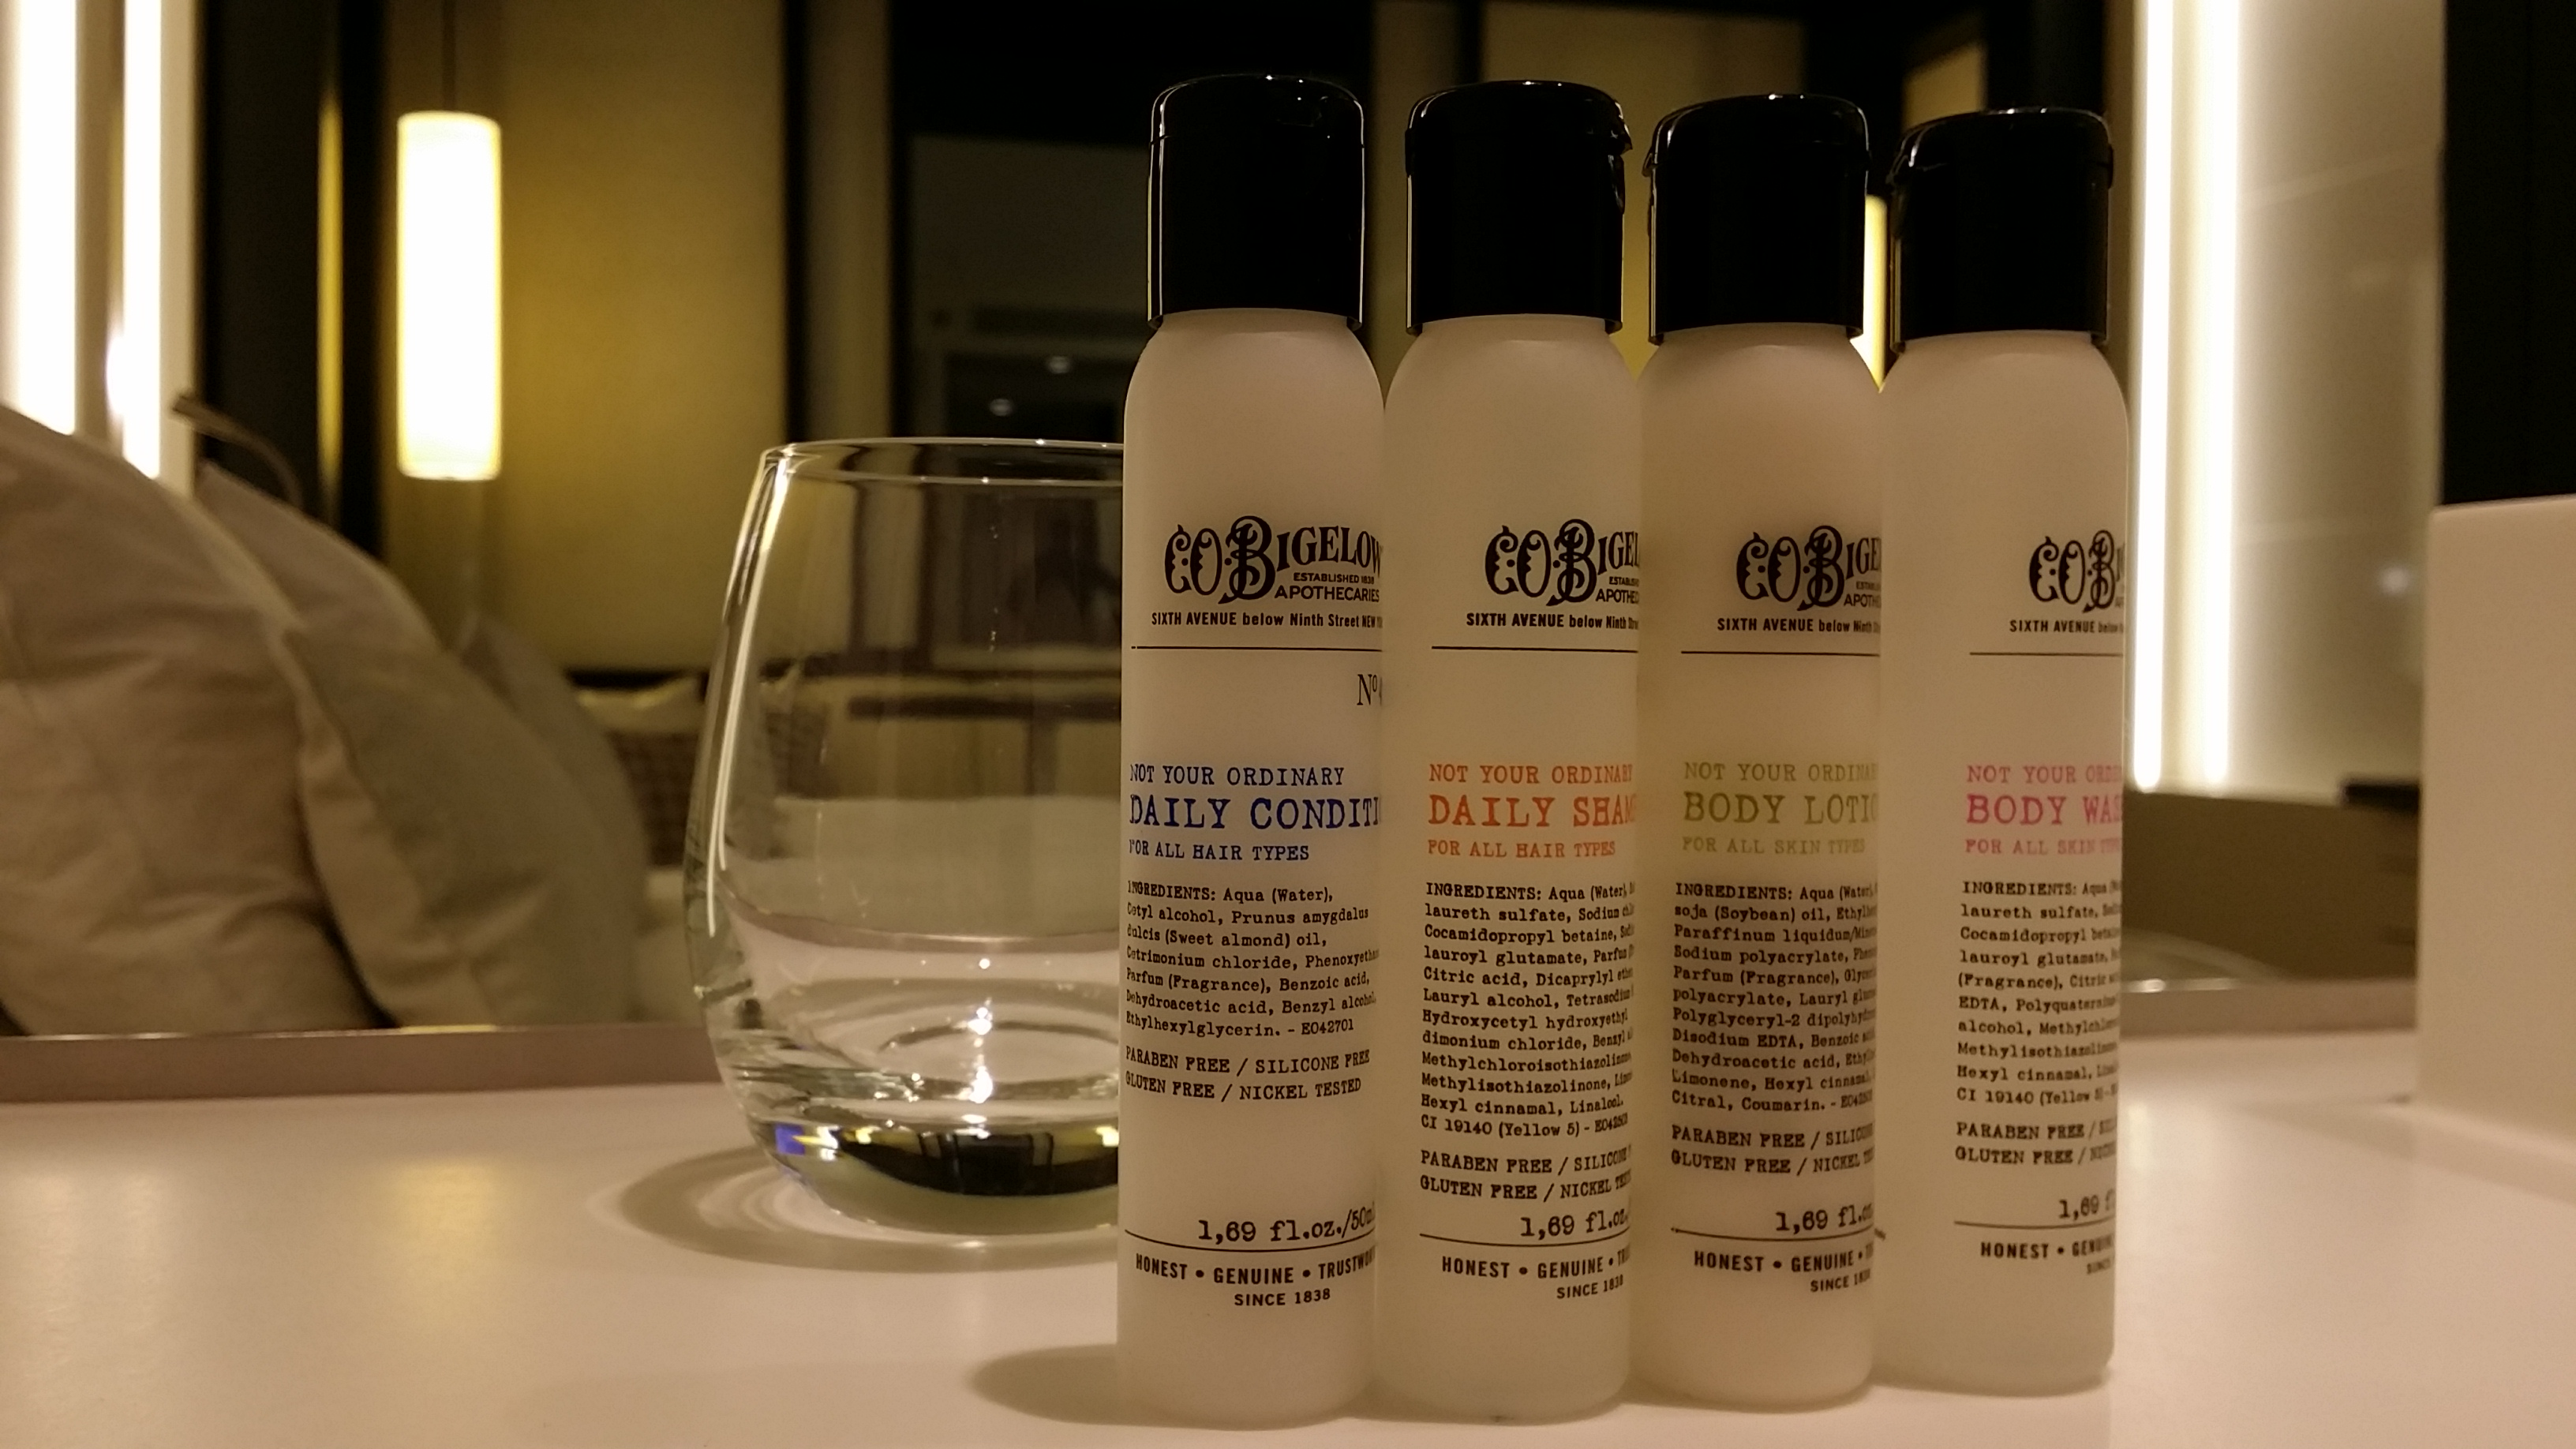 The Hotel offers bath products from C.O. Bigelow, the oldest apothecary in America founded in 1838 in New York